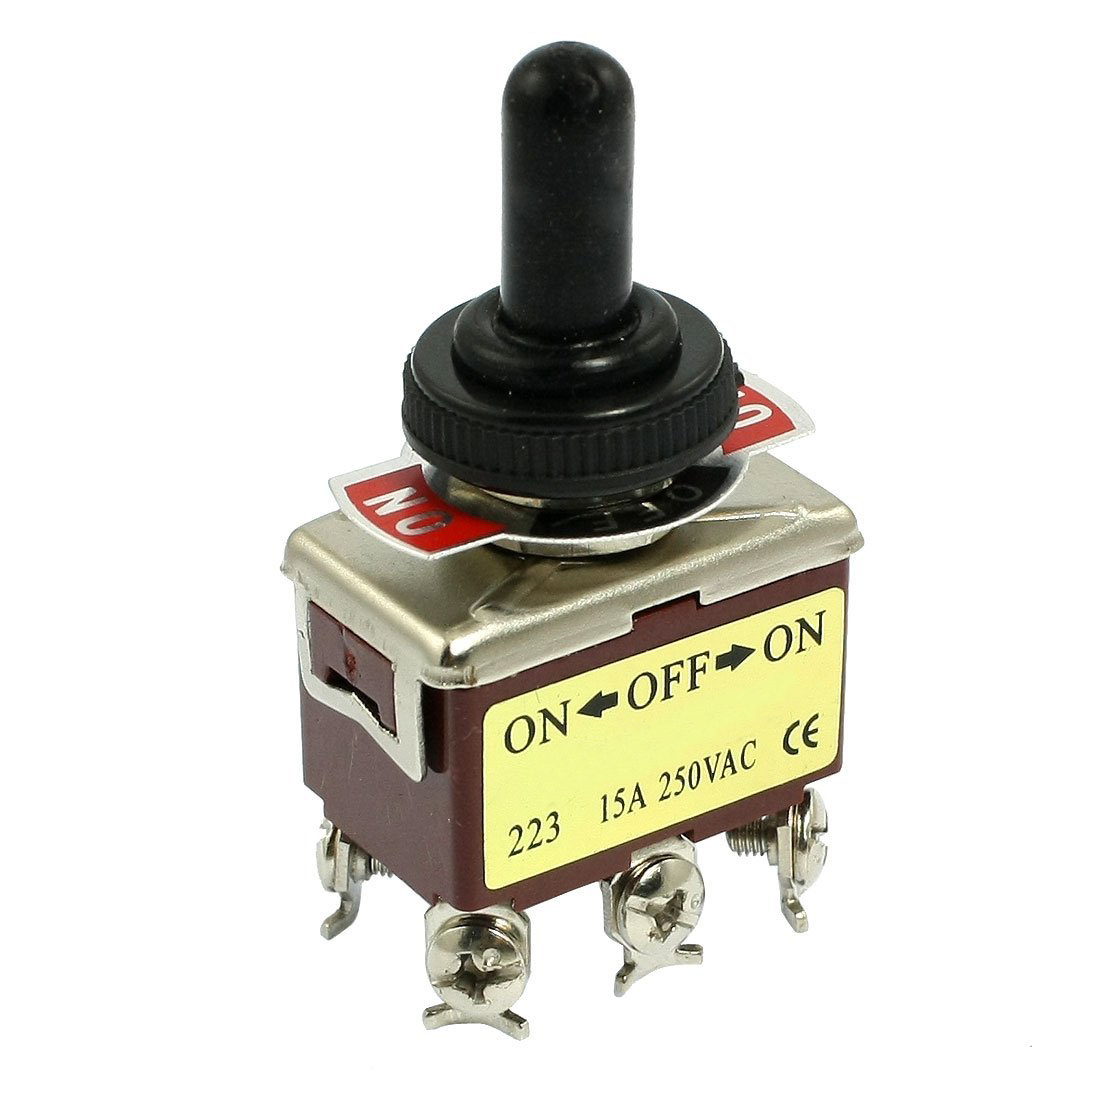 Promotion! AC 250V 15A 6 Pin DPDT On/Off/On 3 Position Mini Toggle Switch 5pcs lot high quality 2 pin snap in on off position snap boat button switch 12v 110v 250v t1405 p0 5